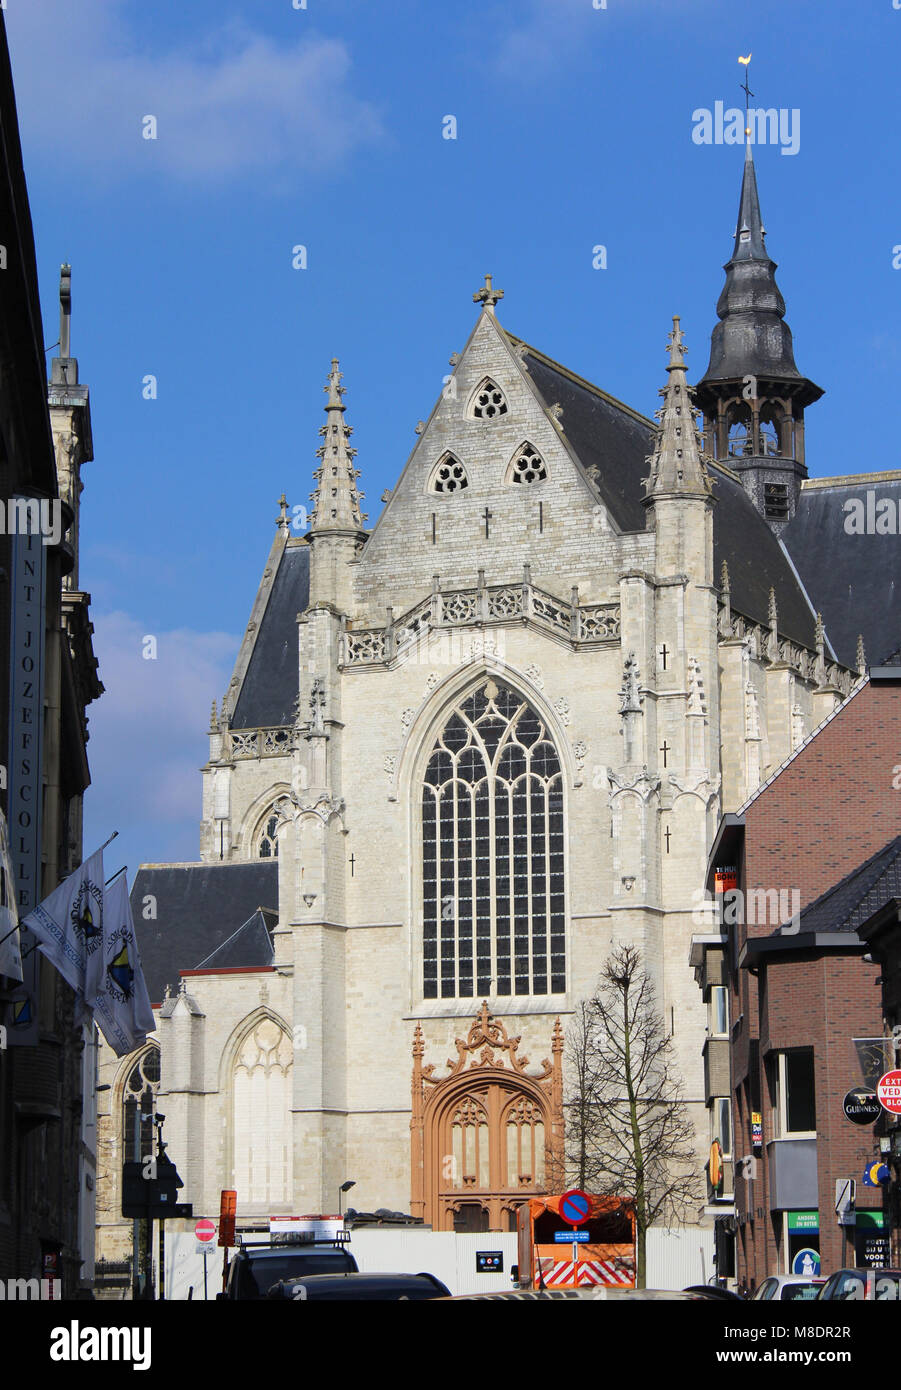 AALST, BELGIUM, 24 FEBRUARY 2018: The newly renovated exterior of the church of St. Martin (Sint Martinus Kerk) - Stock Image